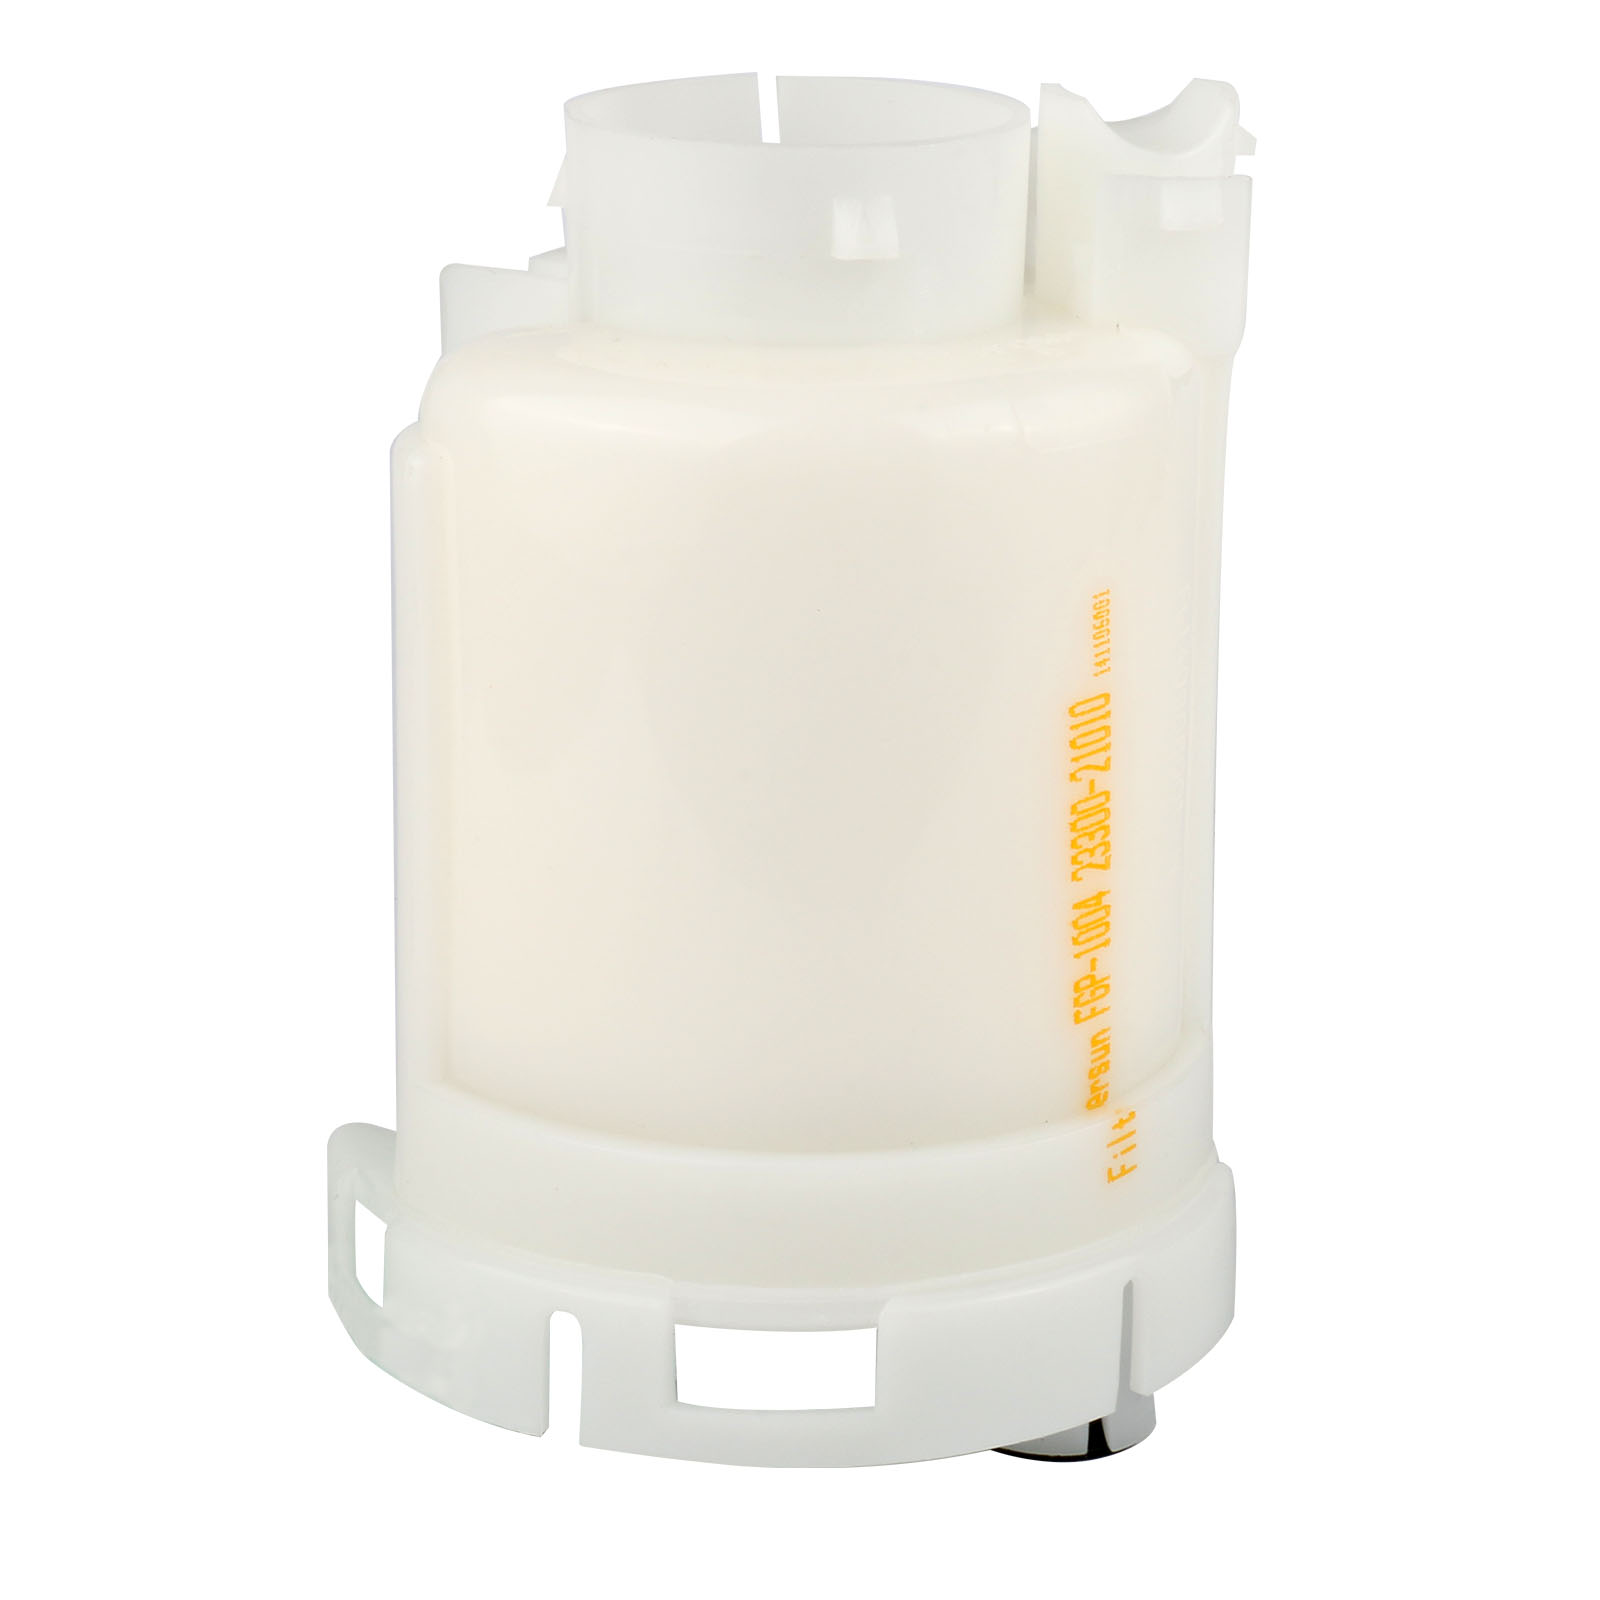 car gas gasoline petrol fuel filter oe 23300 21010 23300 0d030replacement parts for [ 1600 x 1600 Pixel ]